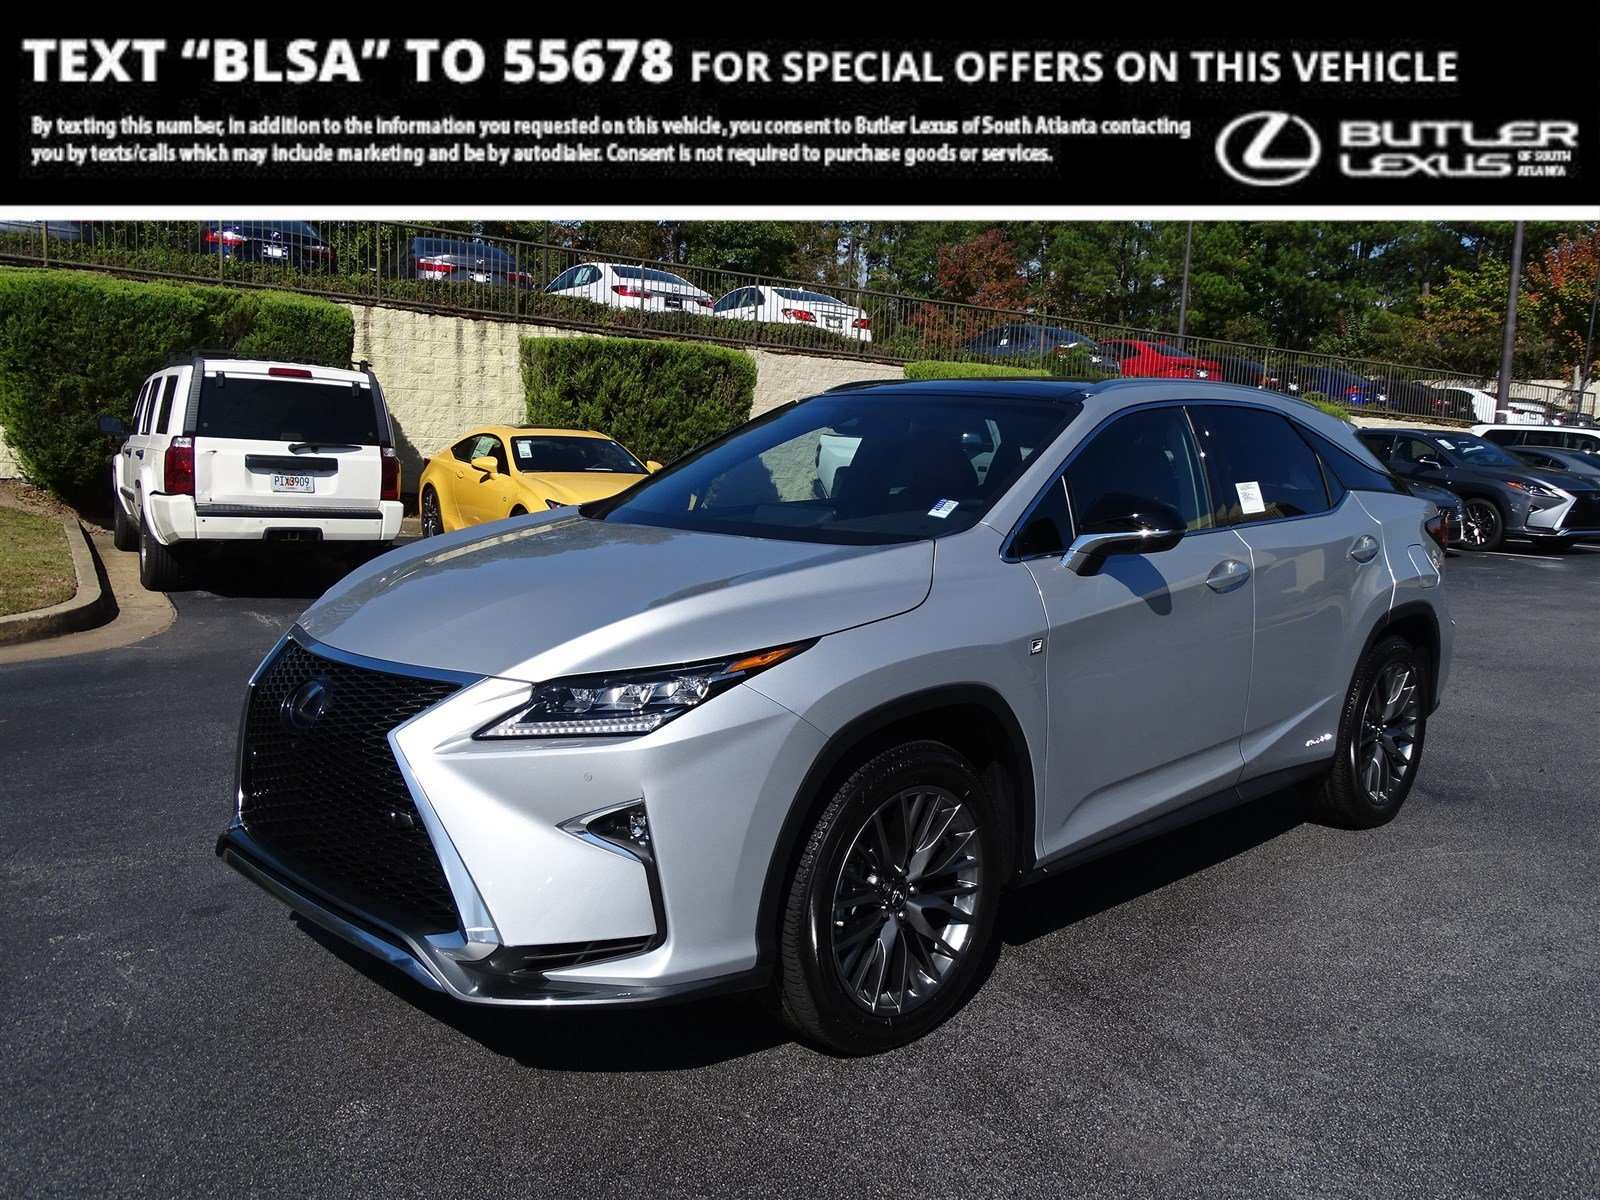 61 All New 2019 Lexus RX 450h Exterior And Interior